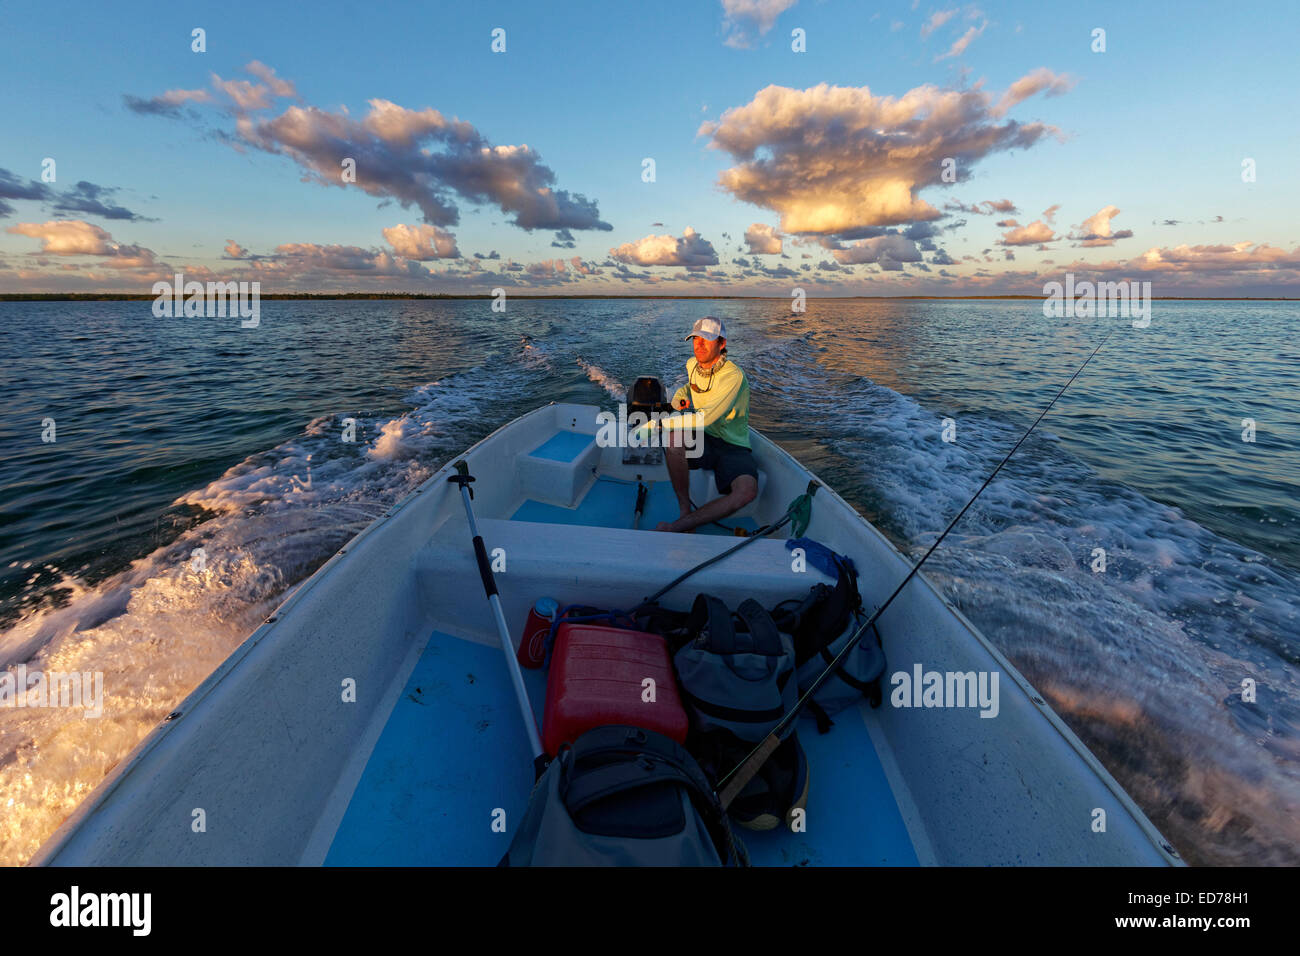 Fisherman driving small boat at sunset, abaco, bahamas - Stock Image